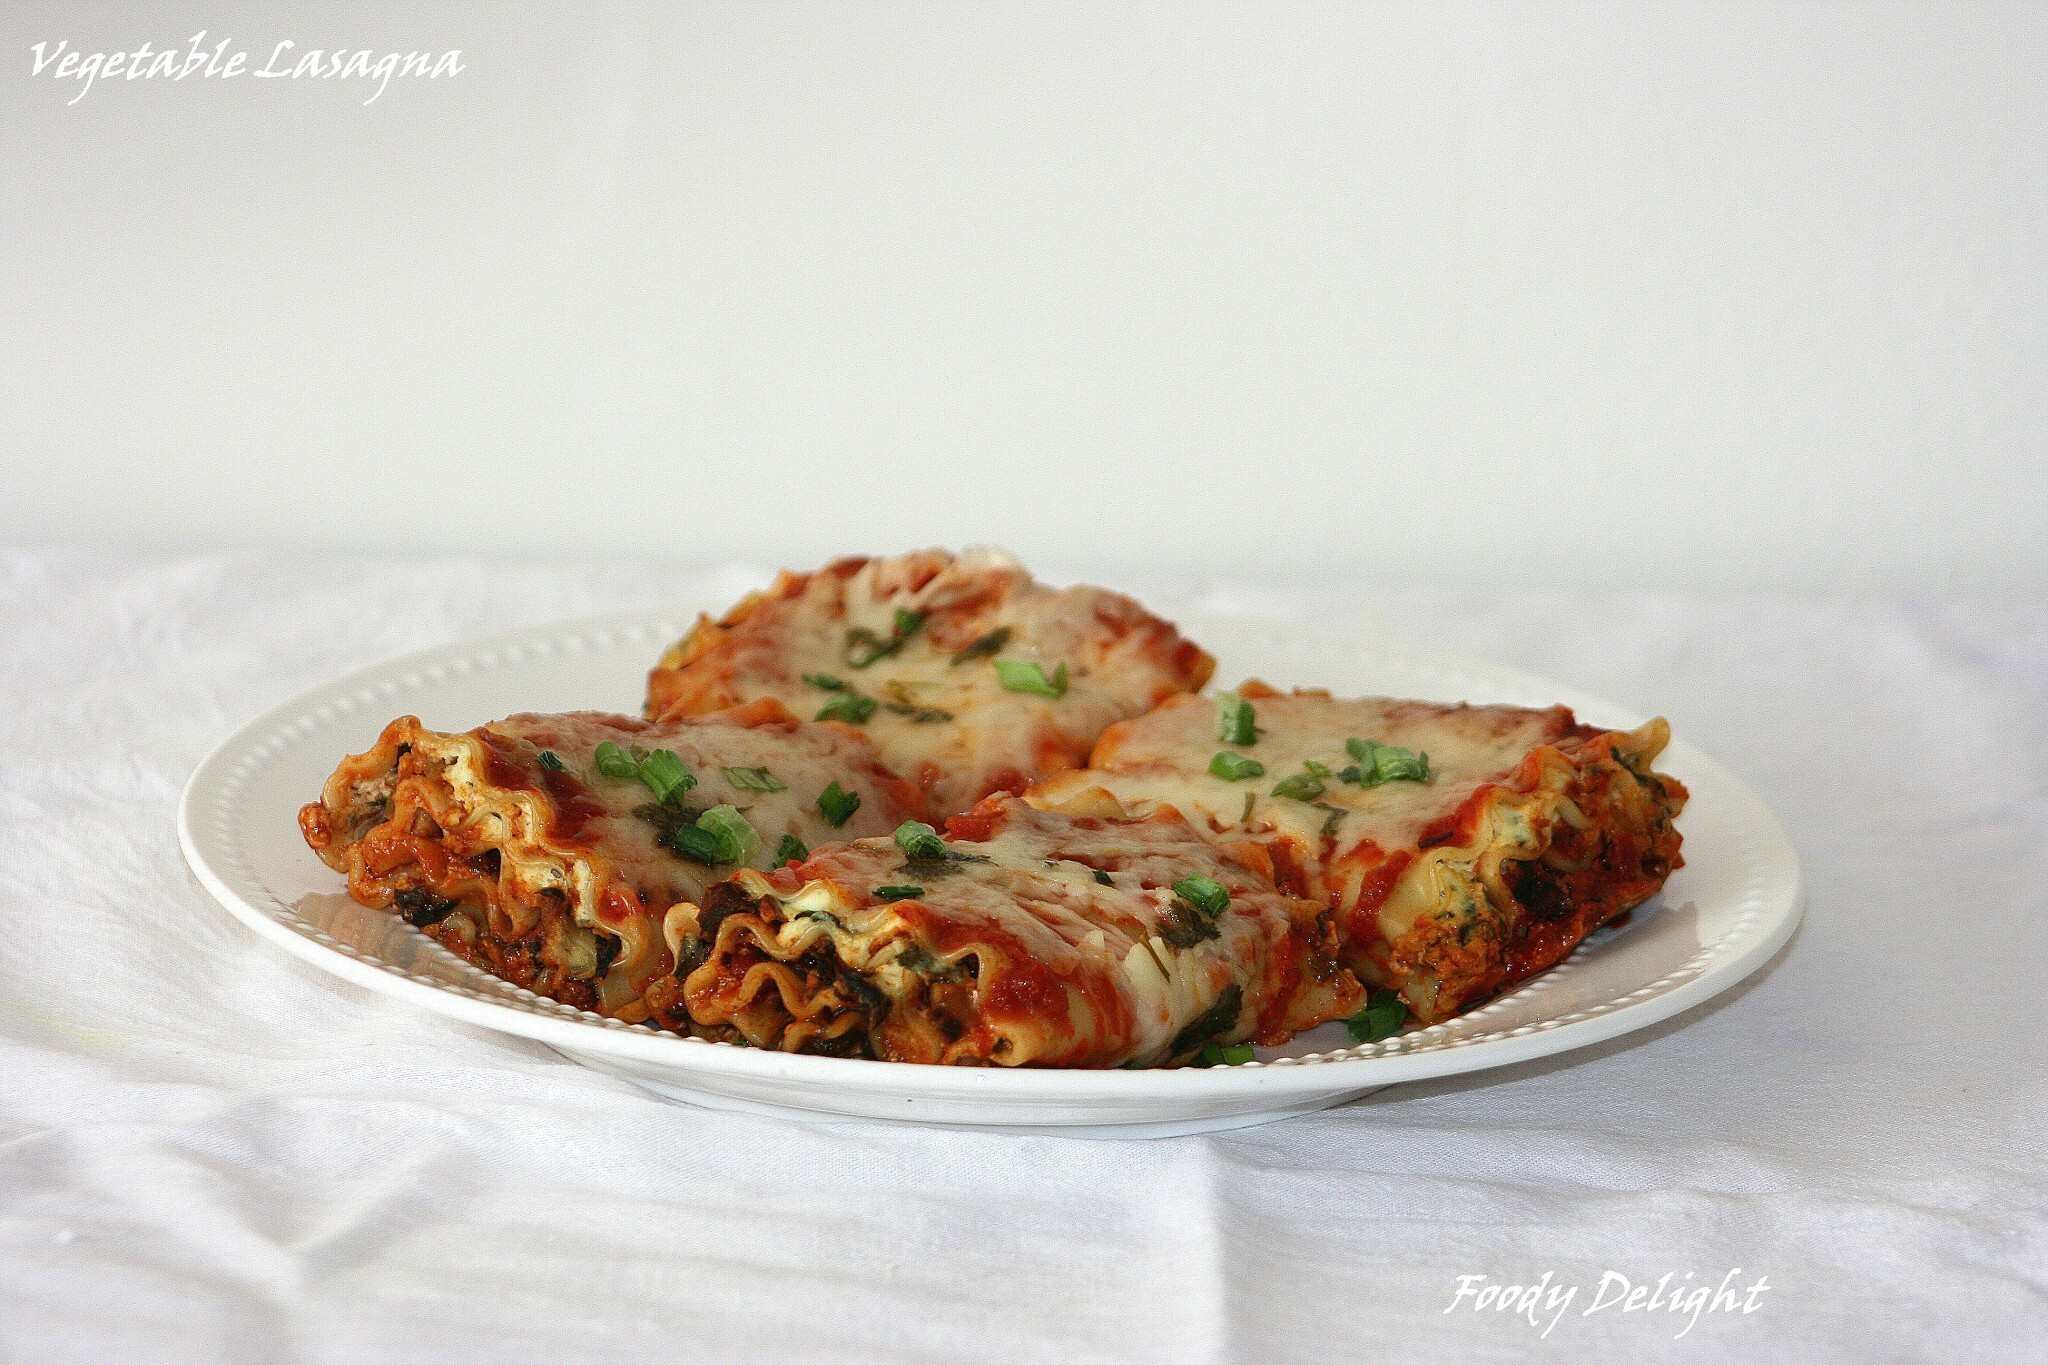 Vegetable Lasagna - Roll Ups